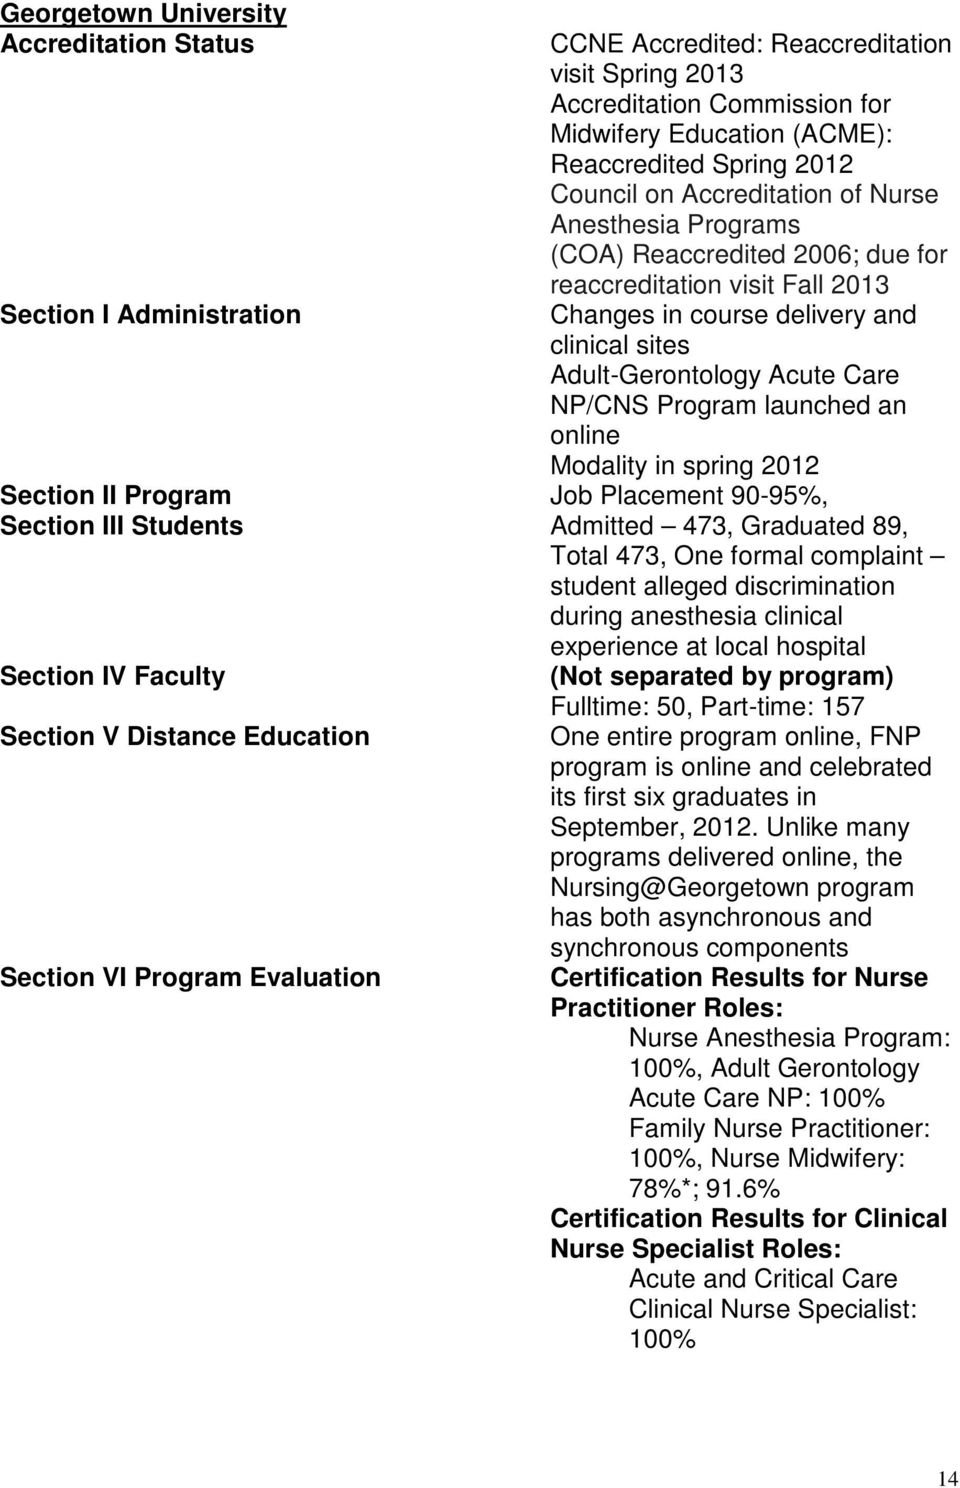 NP/CNS Program launched an online Modality in spring 2012 Section II Program Job Placement 90-95%, Section III Students Admitted 473, Graduated 89, Total 473, One formal complaint student alleged